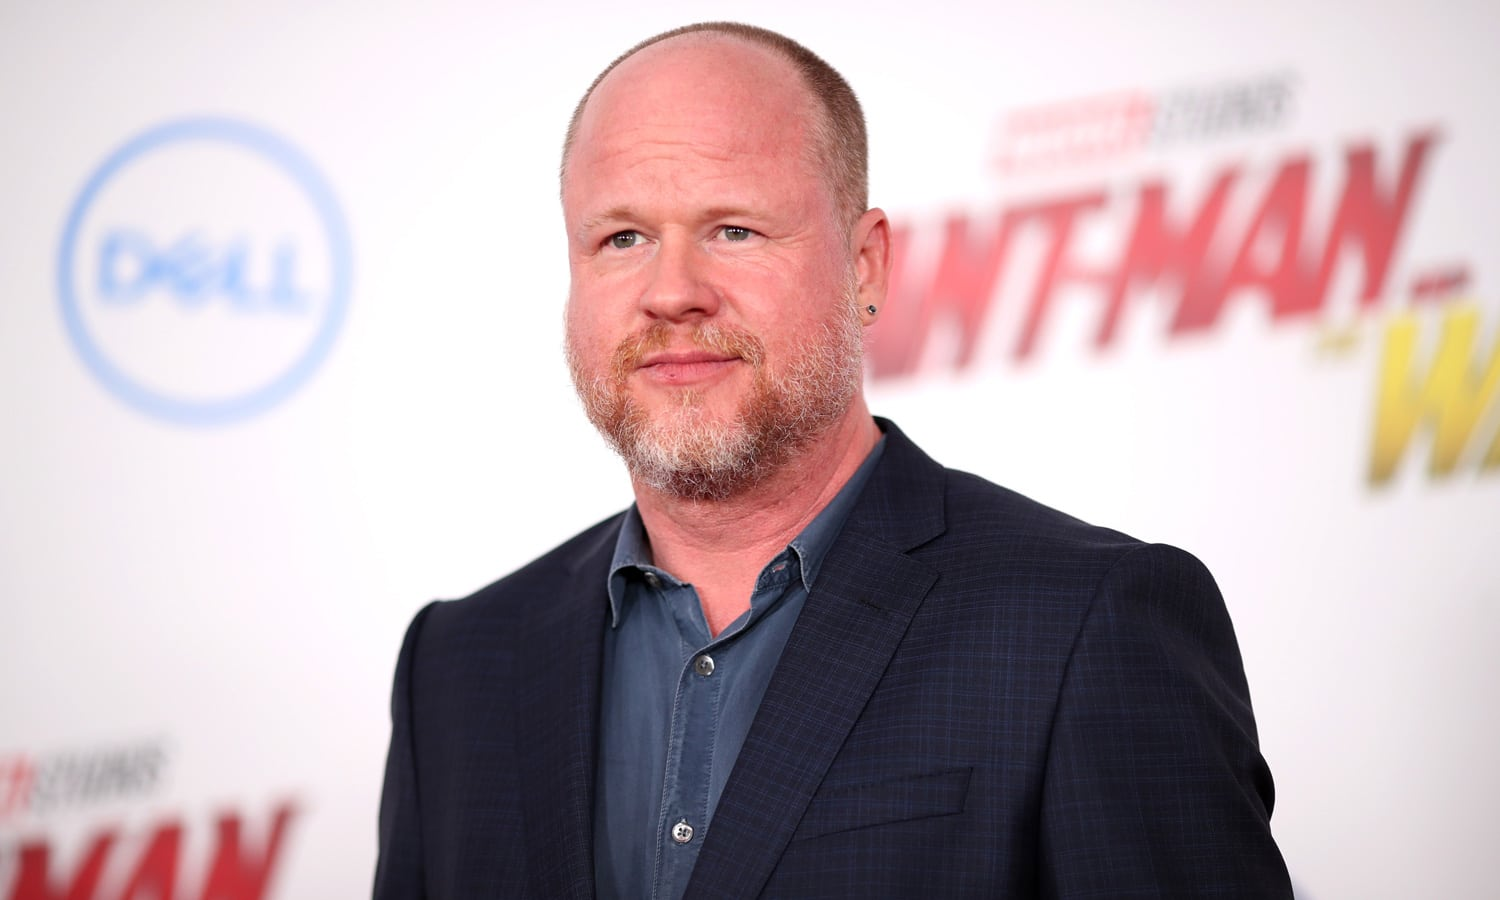 Does Joss Whedon Smoke Weed?